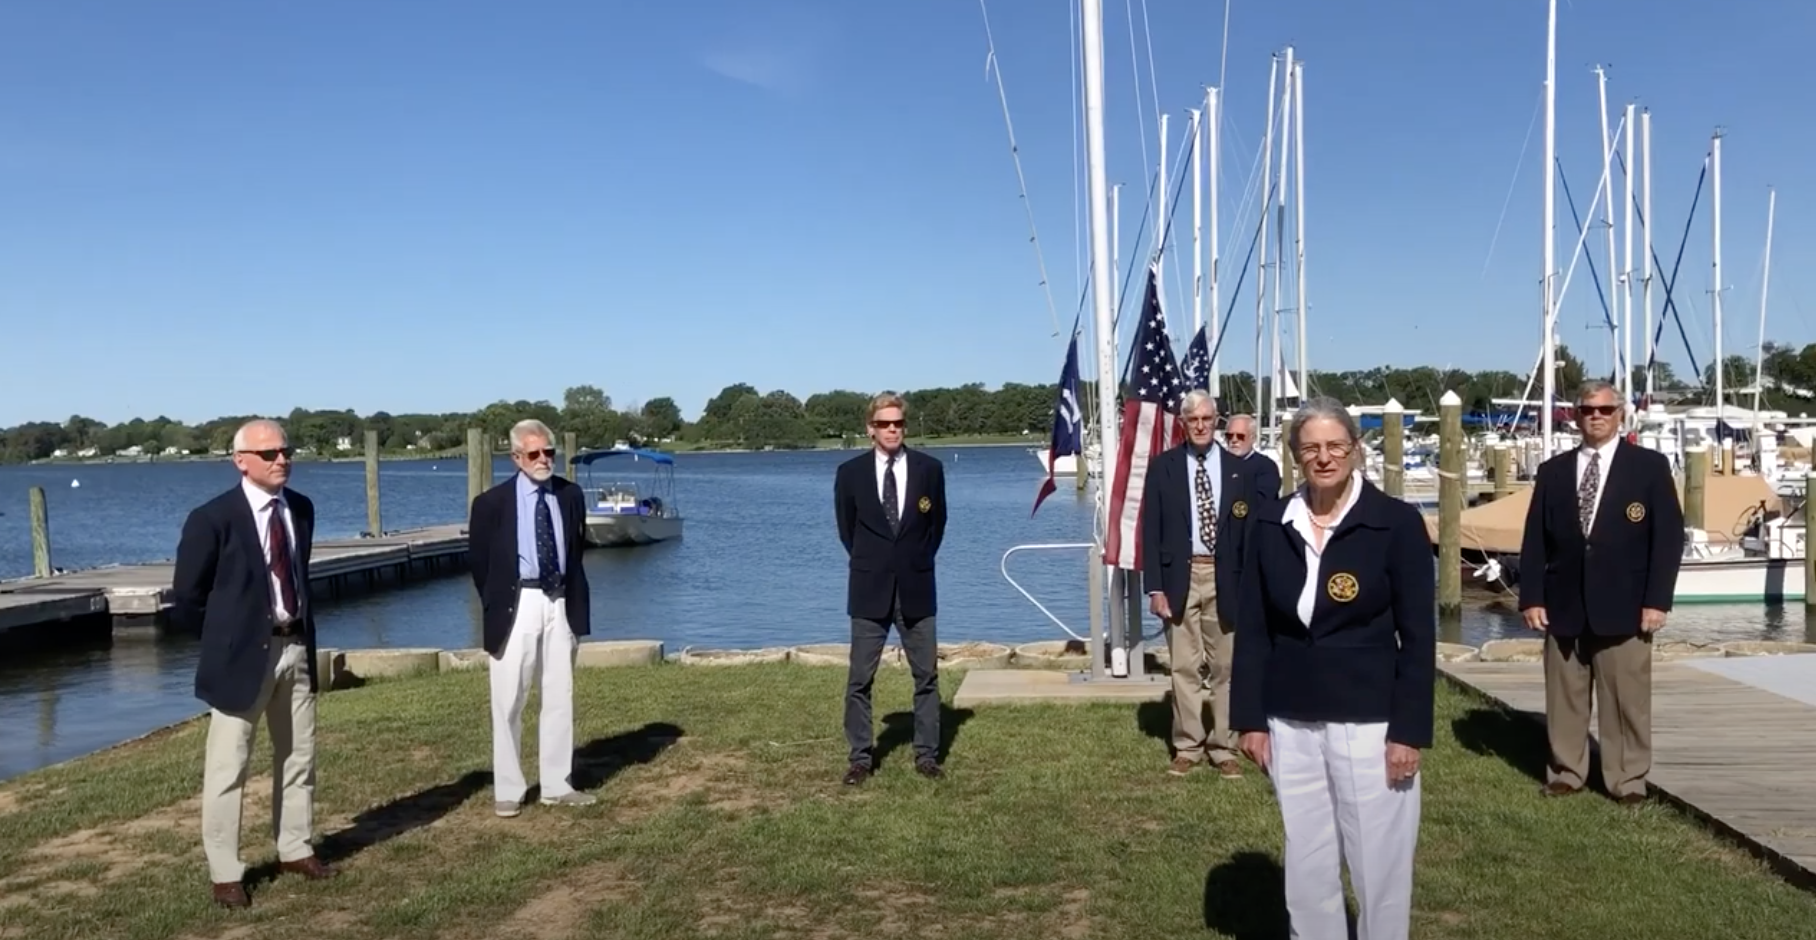 Rappahannock River Yacht Club Commissioning 2020